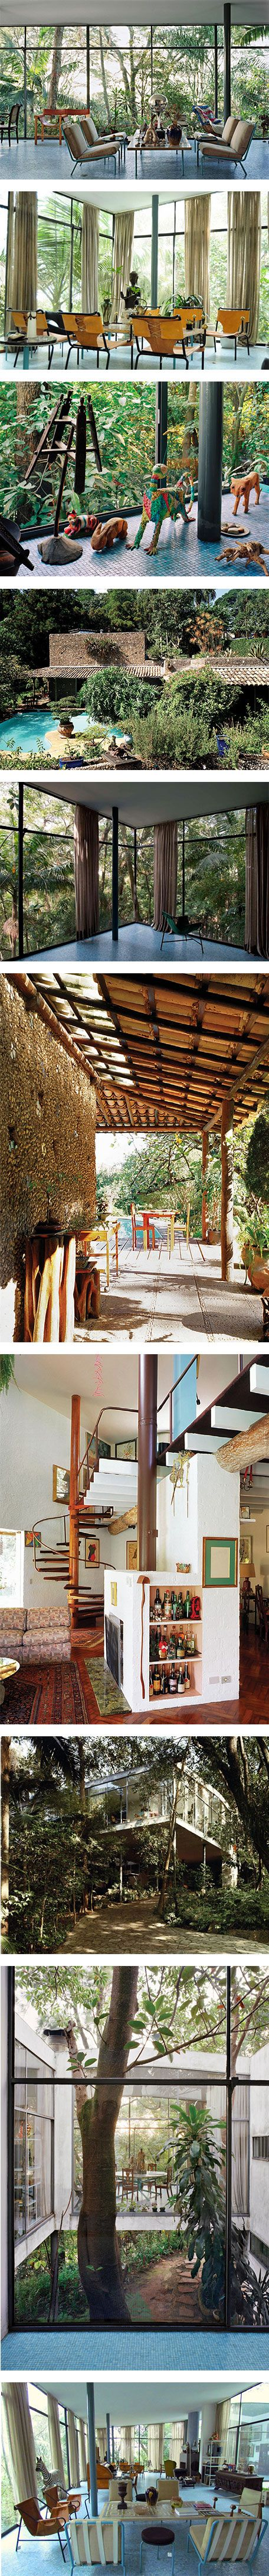 Glass House by Lina Bo Bardi on Nuji.com #glasshouse #linabobardi #brazil